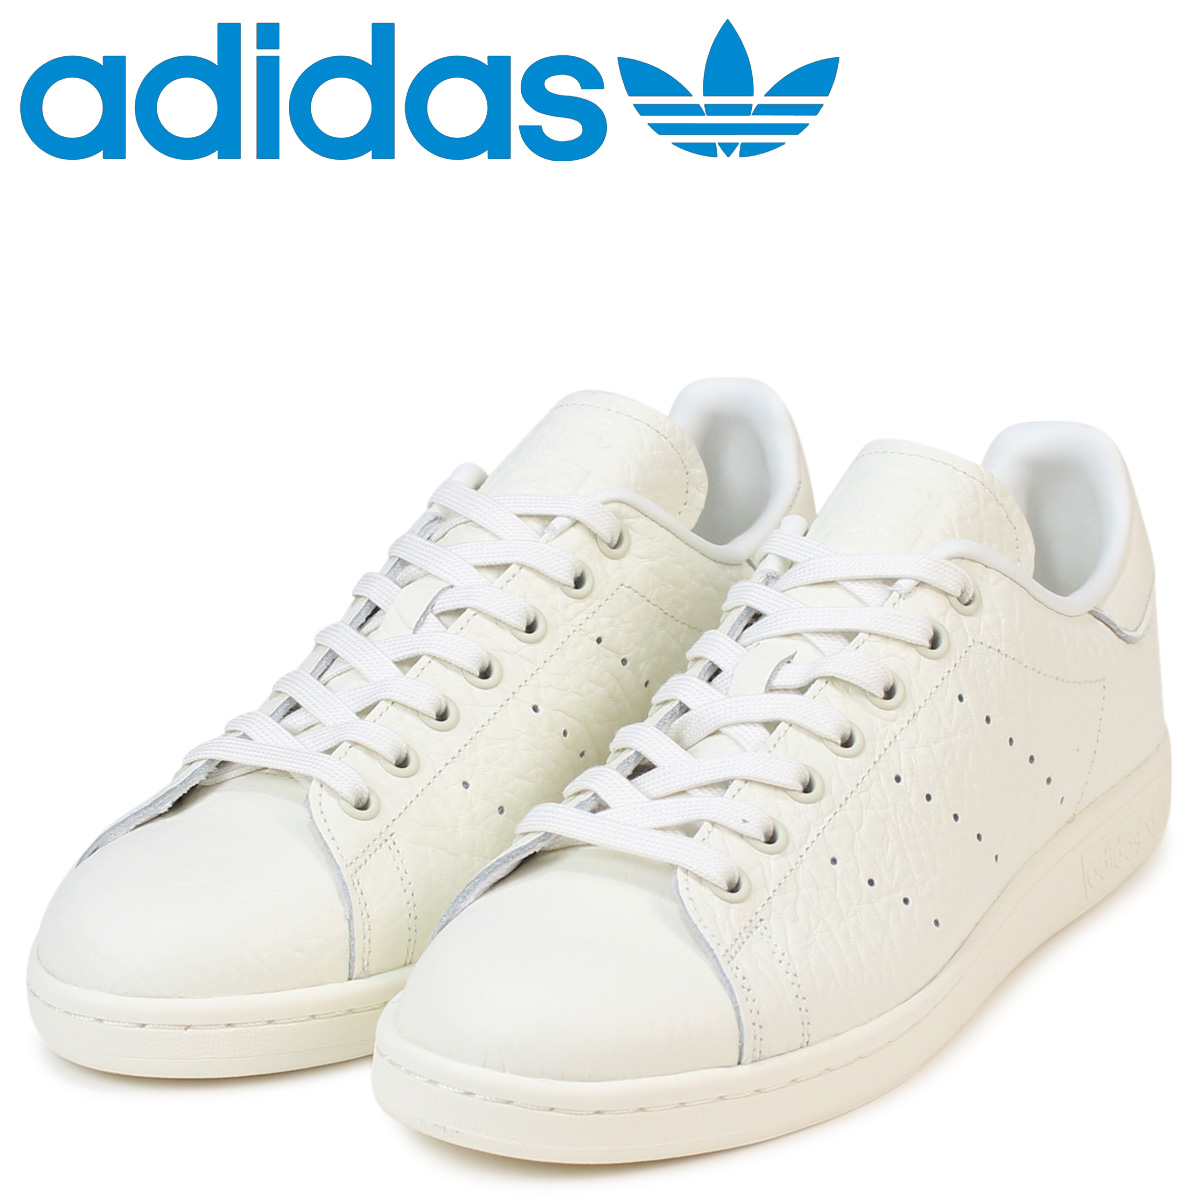 sale retailer 7dc68 baceb Adidas Stan Smith adidas originals sneakers STAN SMITH men BB0036 shoes  [3/11 Shinnyu load]